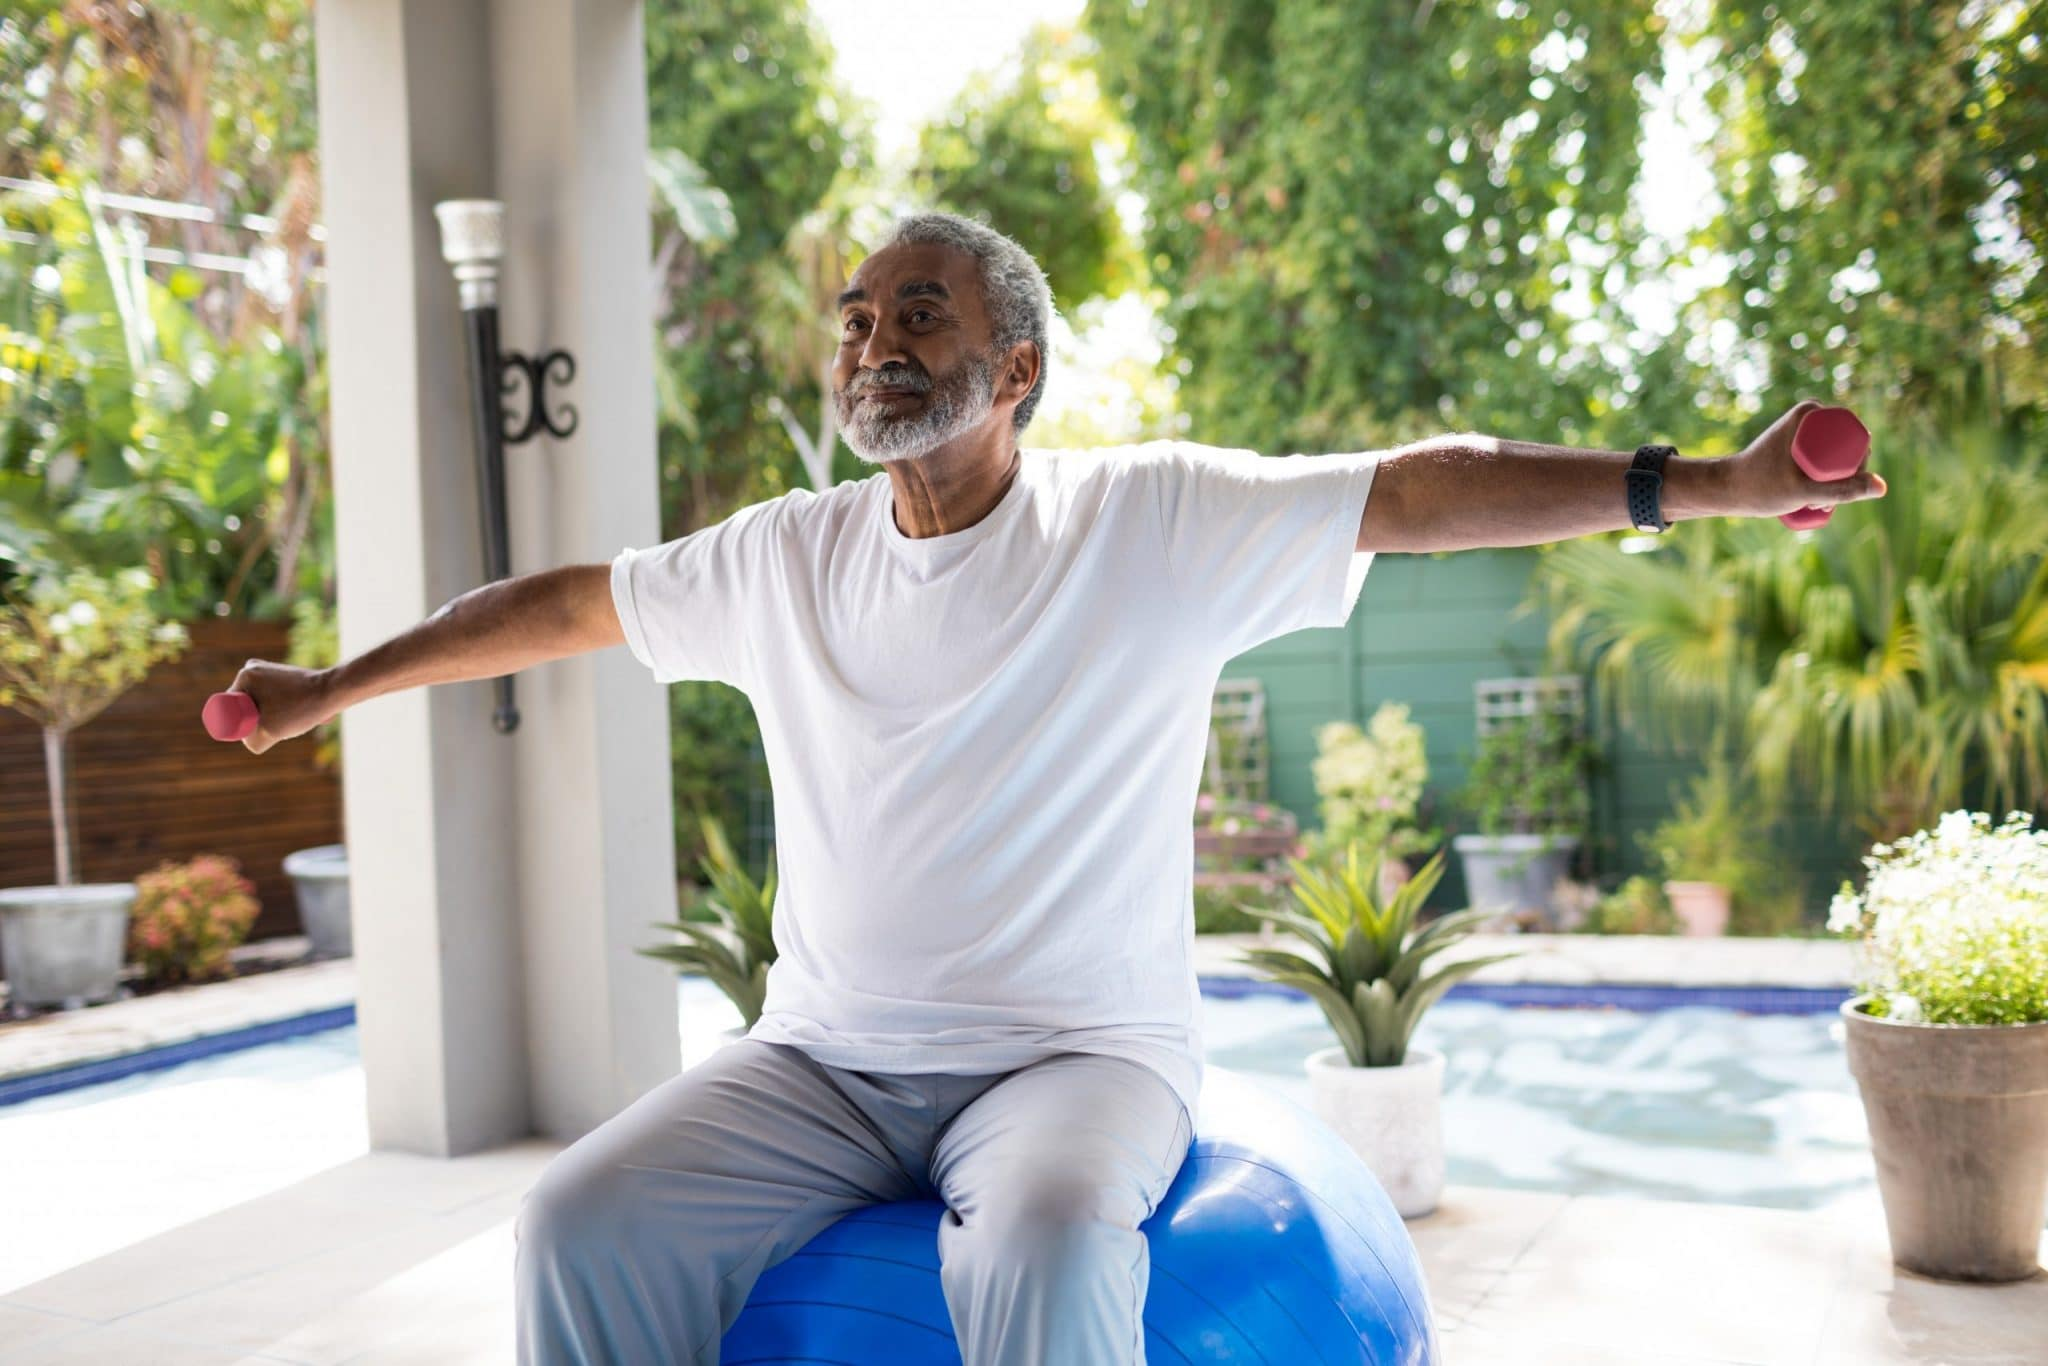 Senior man with arms outstretched lifting dumbbell